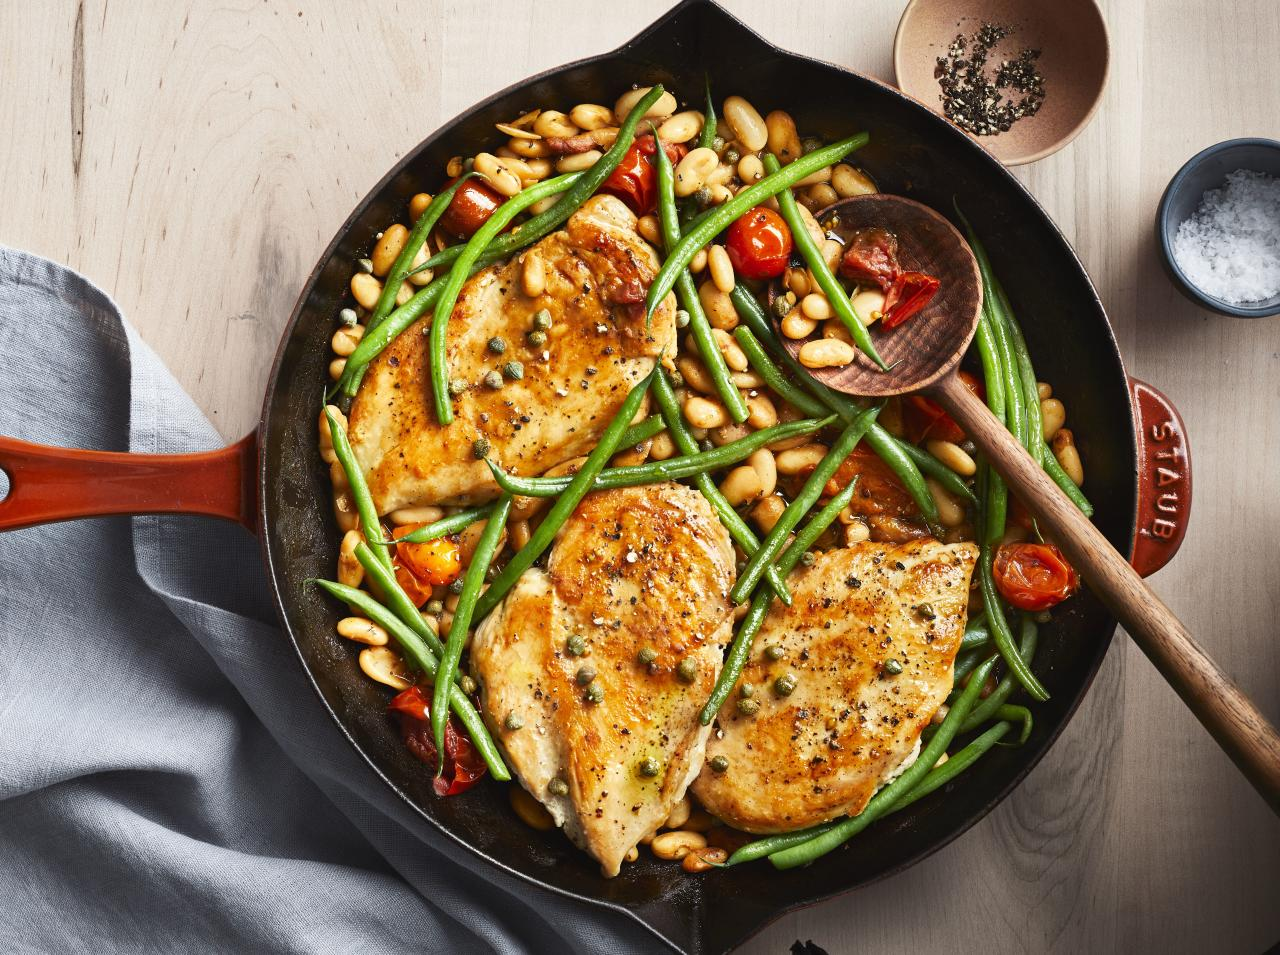 "<p><strong>Try this recipe:</strong> <a href=""https://www.health.com/recipes/lemon-chicken-white-green-beans"">Lemon Chicken With White & Green Beans</a></p> <p>Channel a traditional French dinner with this quick dish by sautéeing chicken, green beans, and white wine dish in a skillet. </p> <p><strong>Ingredients:</strong> chicken breasts, kosher salt, black pepper, olive oil, white wine, chicken broth, cannellini beans, haricots verts, cherry tomatoes, unsalted butter, capers, lemon juice</p> <p><strong>Calories:</strong> 378</p>"